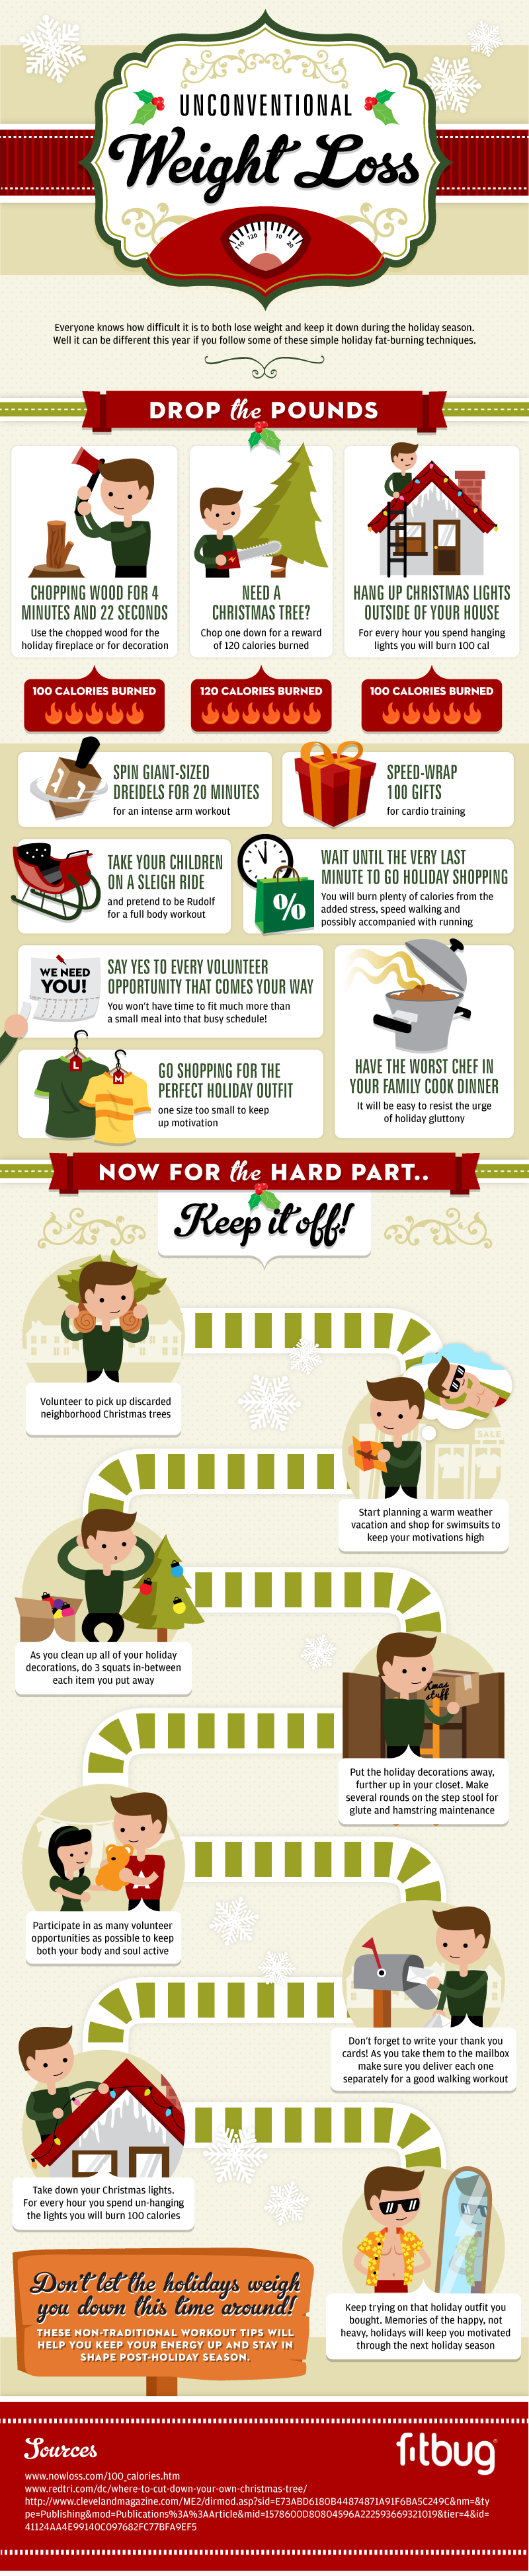 best weight loss retreats infographic